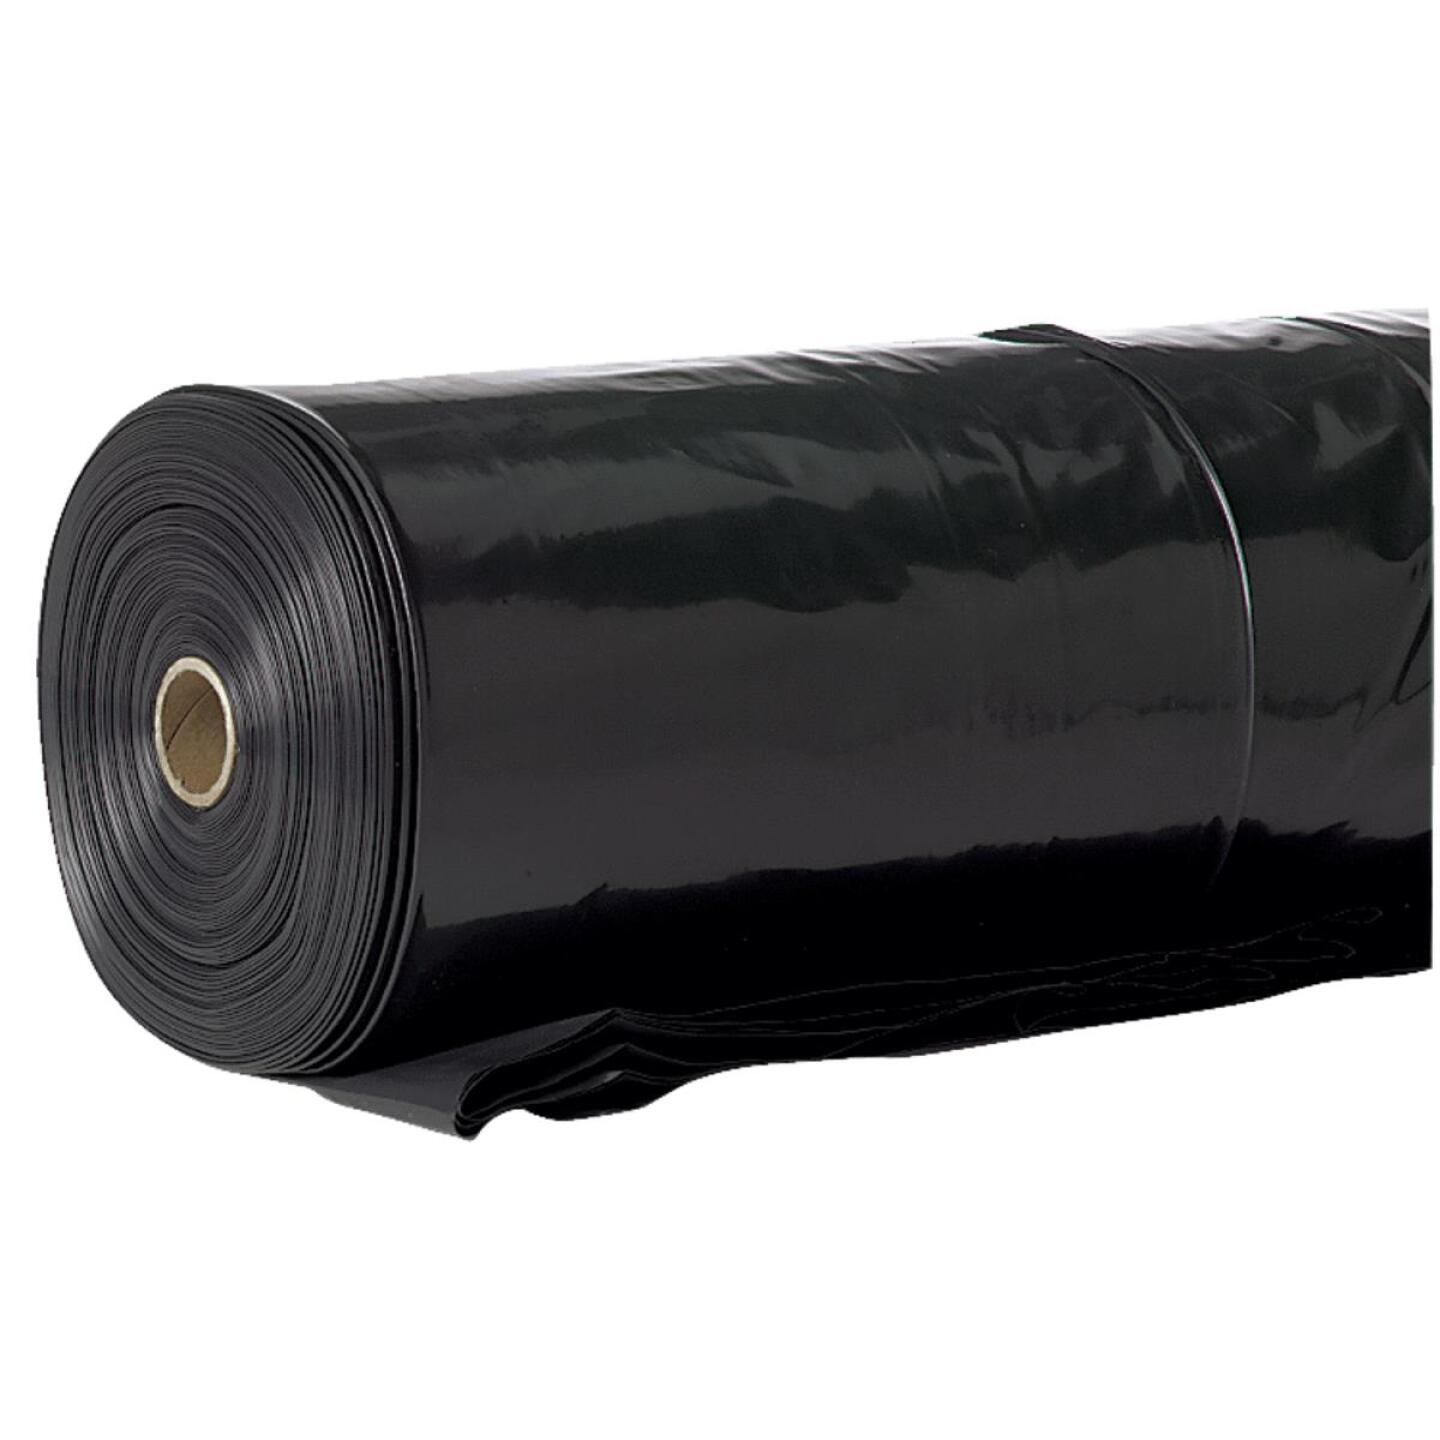 Film-Gard 20 Ft. X 100 Ft. Black 10 Mil. Polyethylene Sheeting Image 1